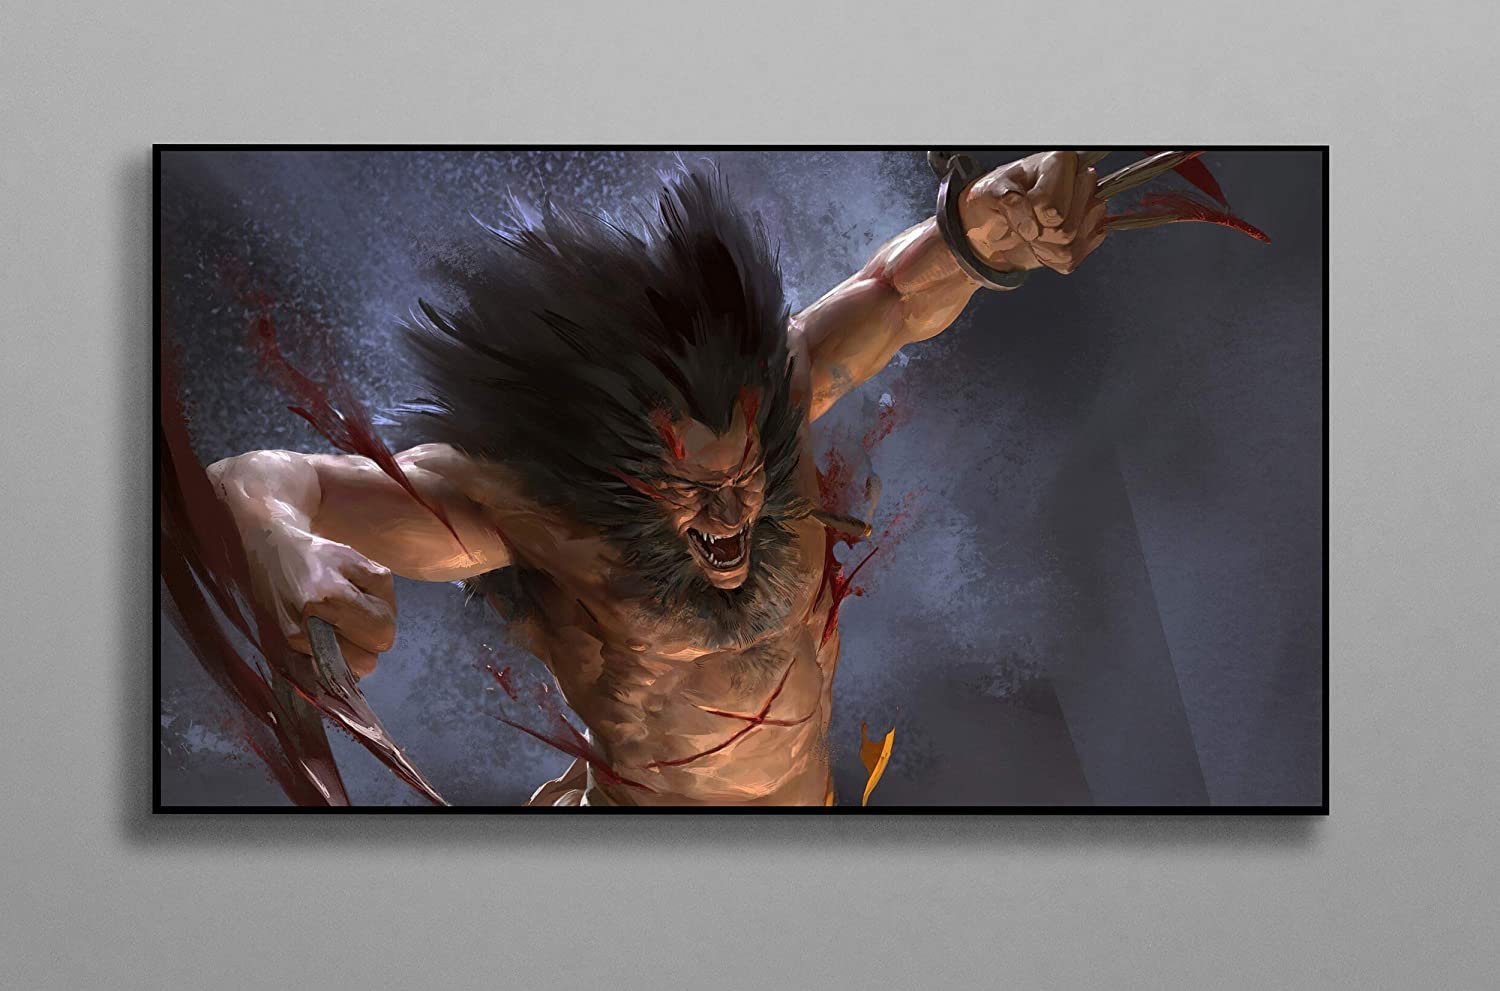 Wolverine Coming Claws Poster Print Canvas Poster Wall Decor Art Wall Art Print Gift Poster Unframed Printing Size - 11